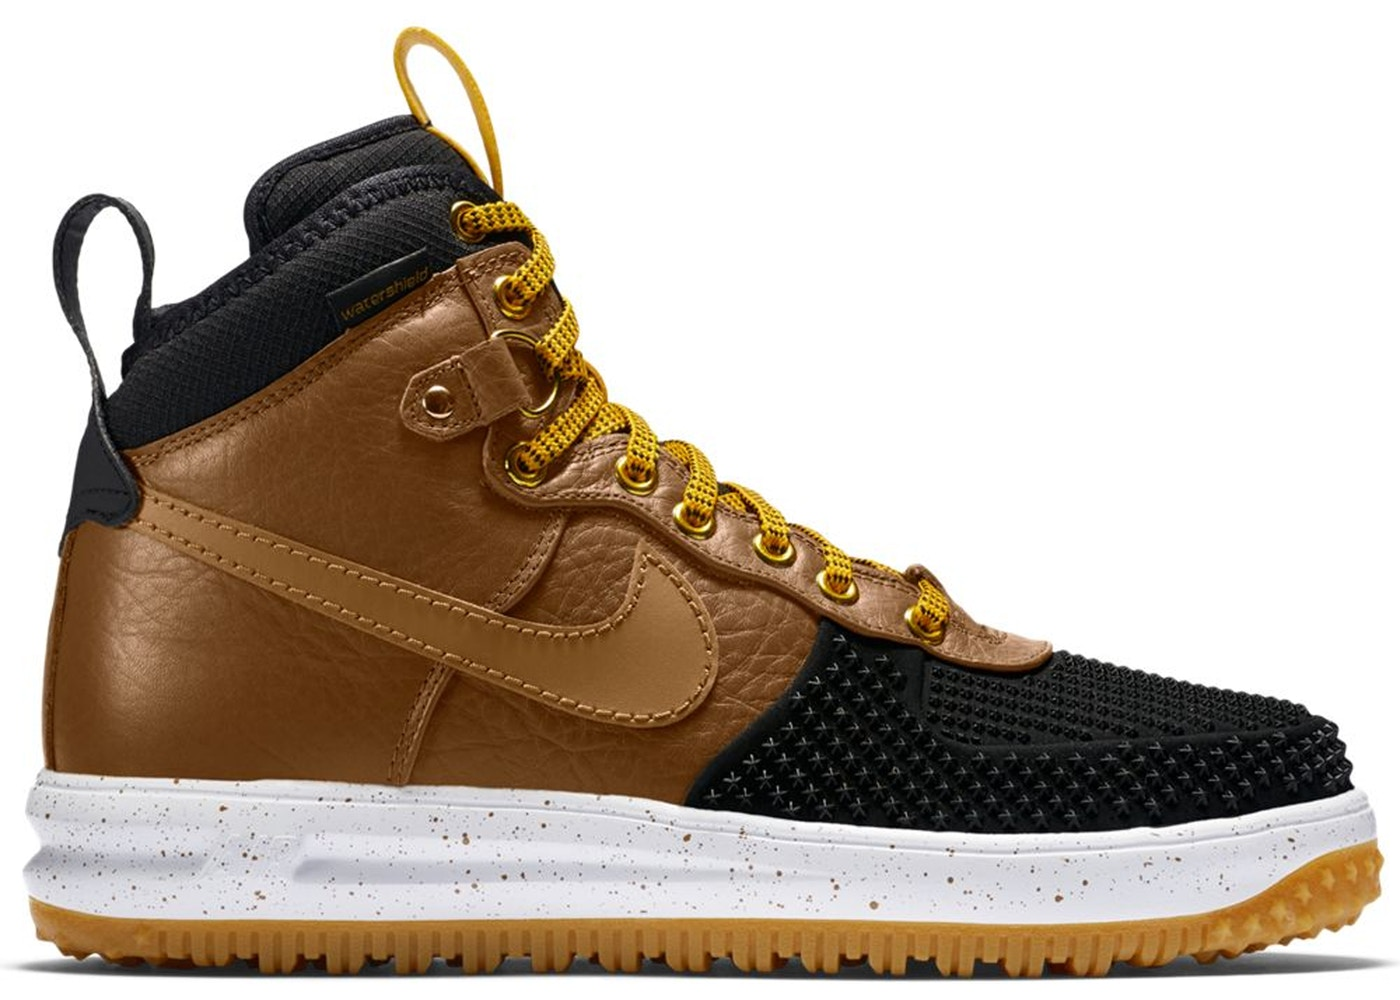 super popular 9a003 c47ea Nike Lunar Force 1 Duckboot Light British Tan - 805899-004